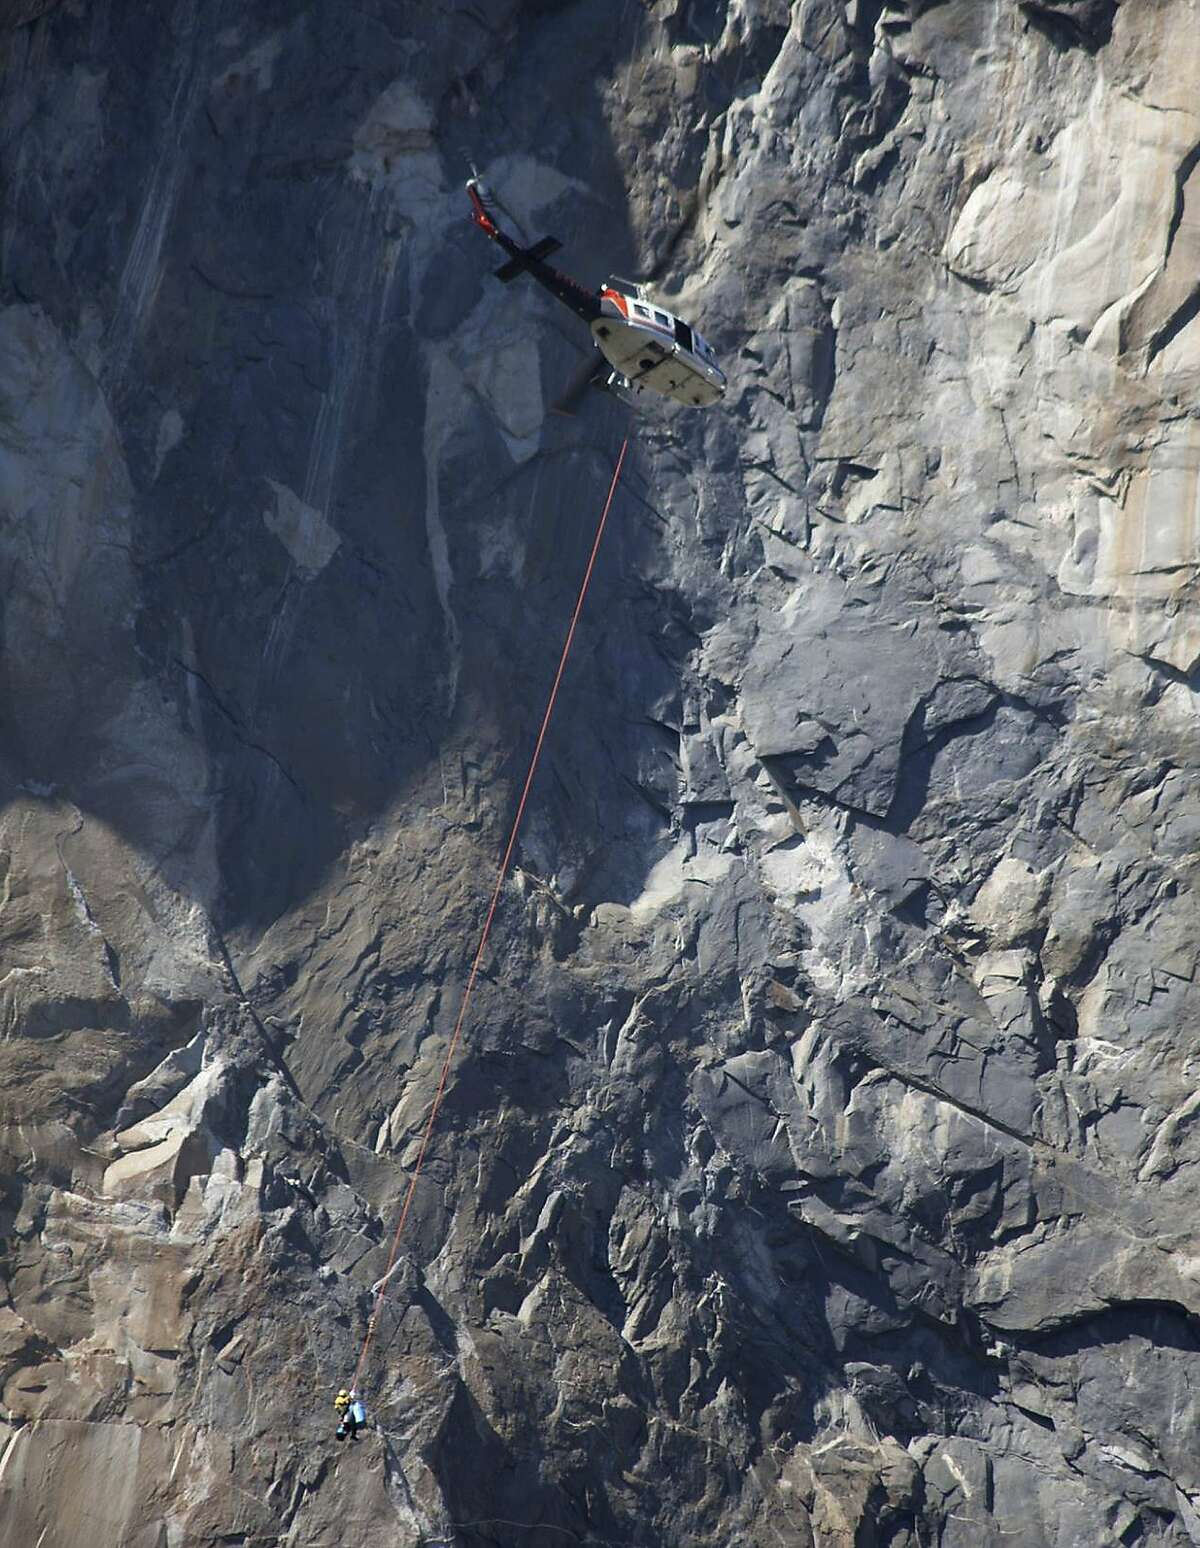 In this Wednesday Sept. 27, 2017, photo provided by Dakota Snider, photographer and Yosemite resident, a helicopter makes a rescue off El Capitan after a major rock fall in Yosemite National Park, Calif. All areas in California's Yosemite Valley are open Thursday, a day after the fatal rock fall. (Dakota Snider via AP)